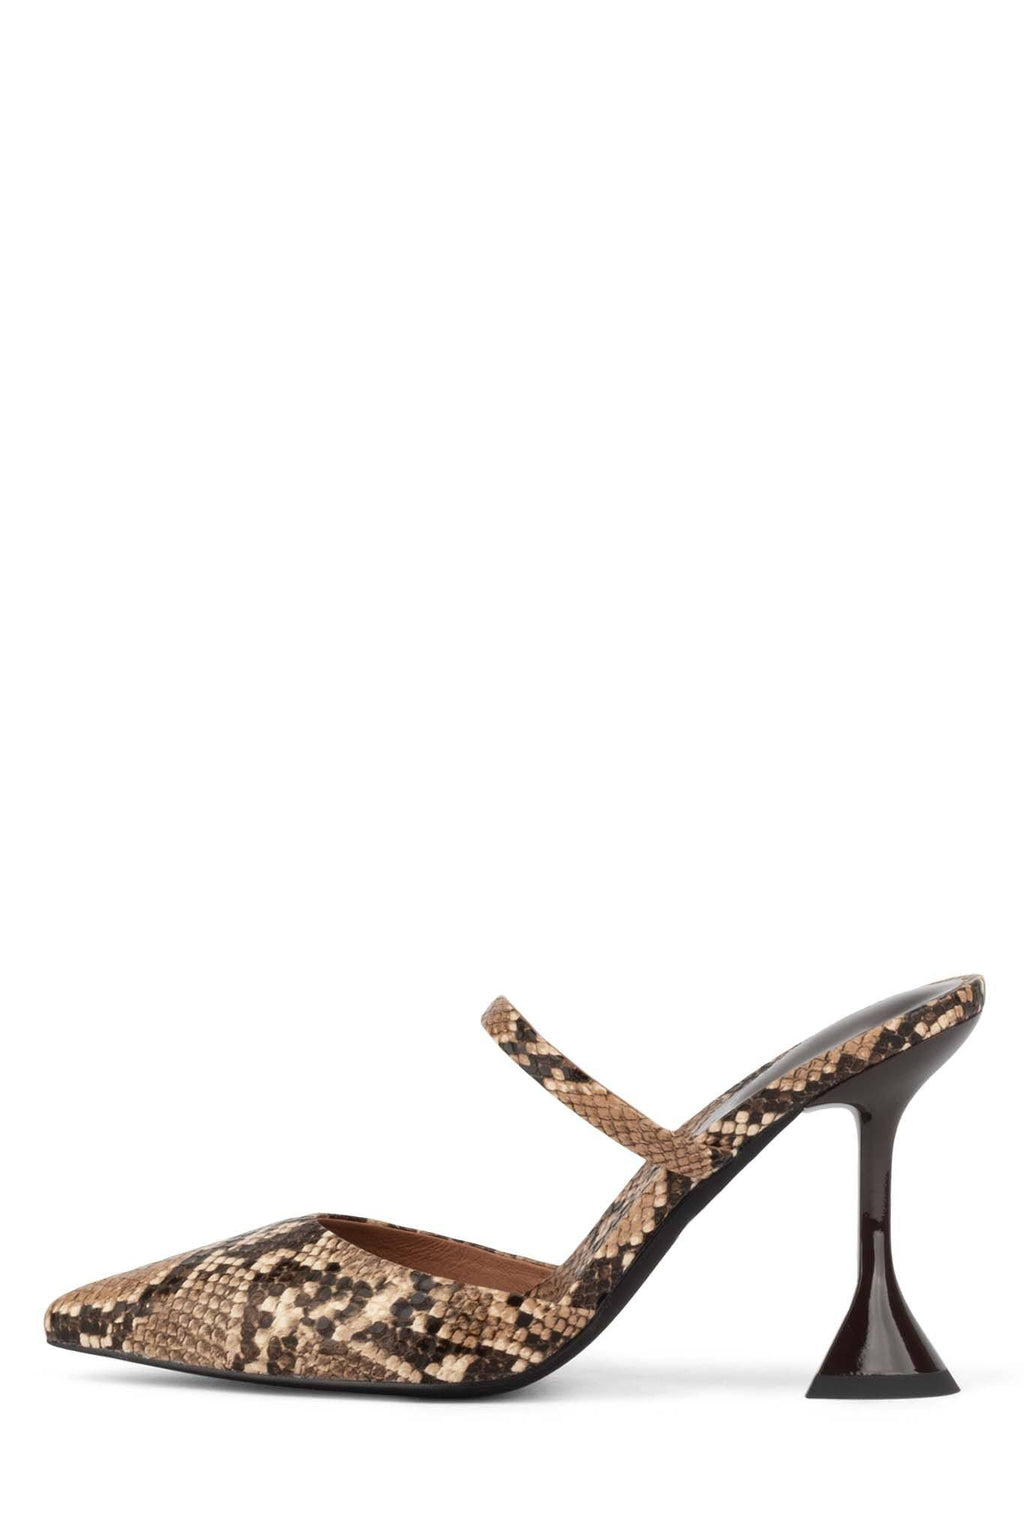 ZIVOT Heeled Mule ST Beige Snake Brown Patent 6